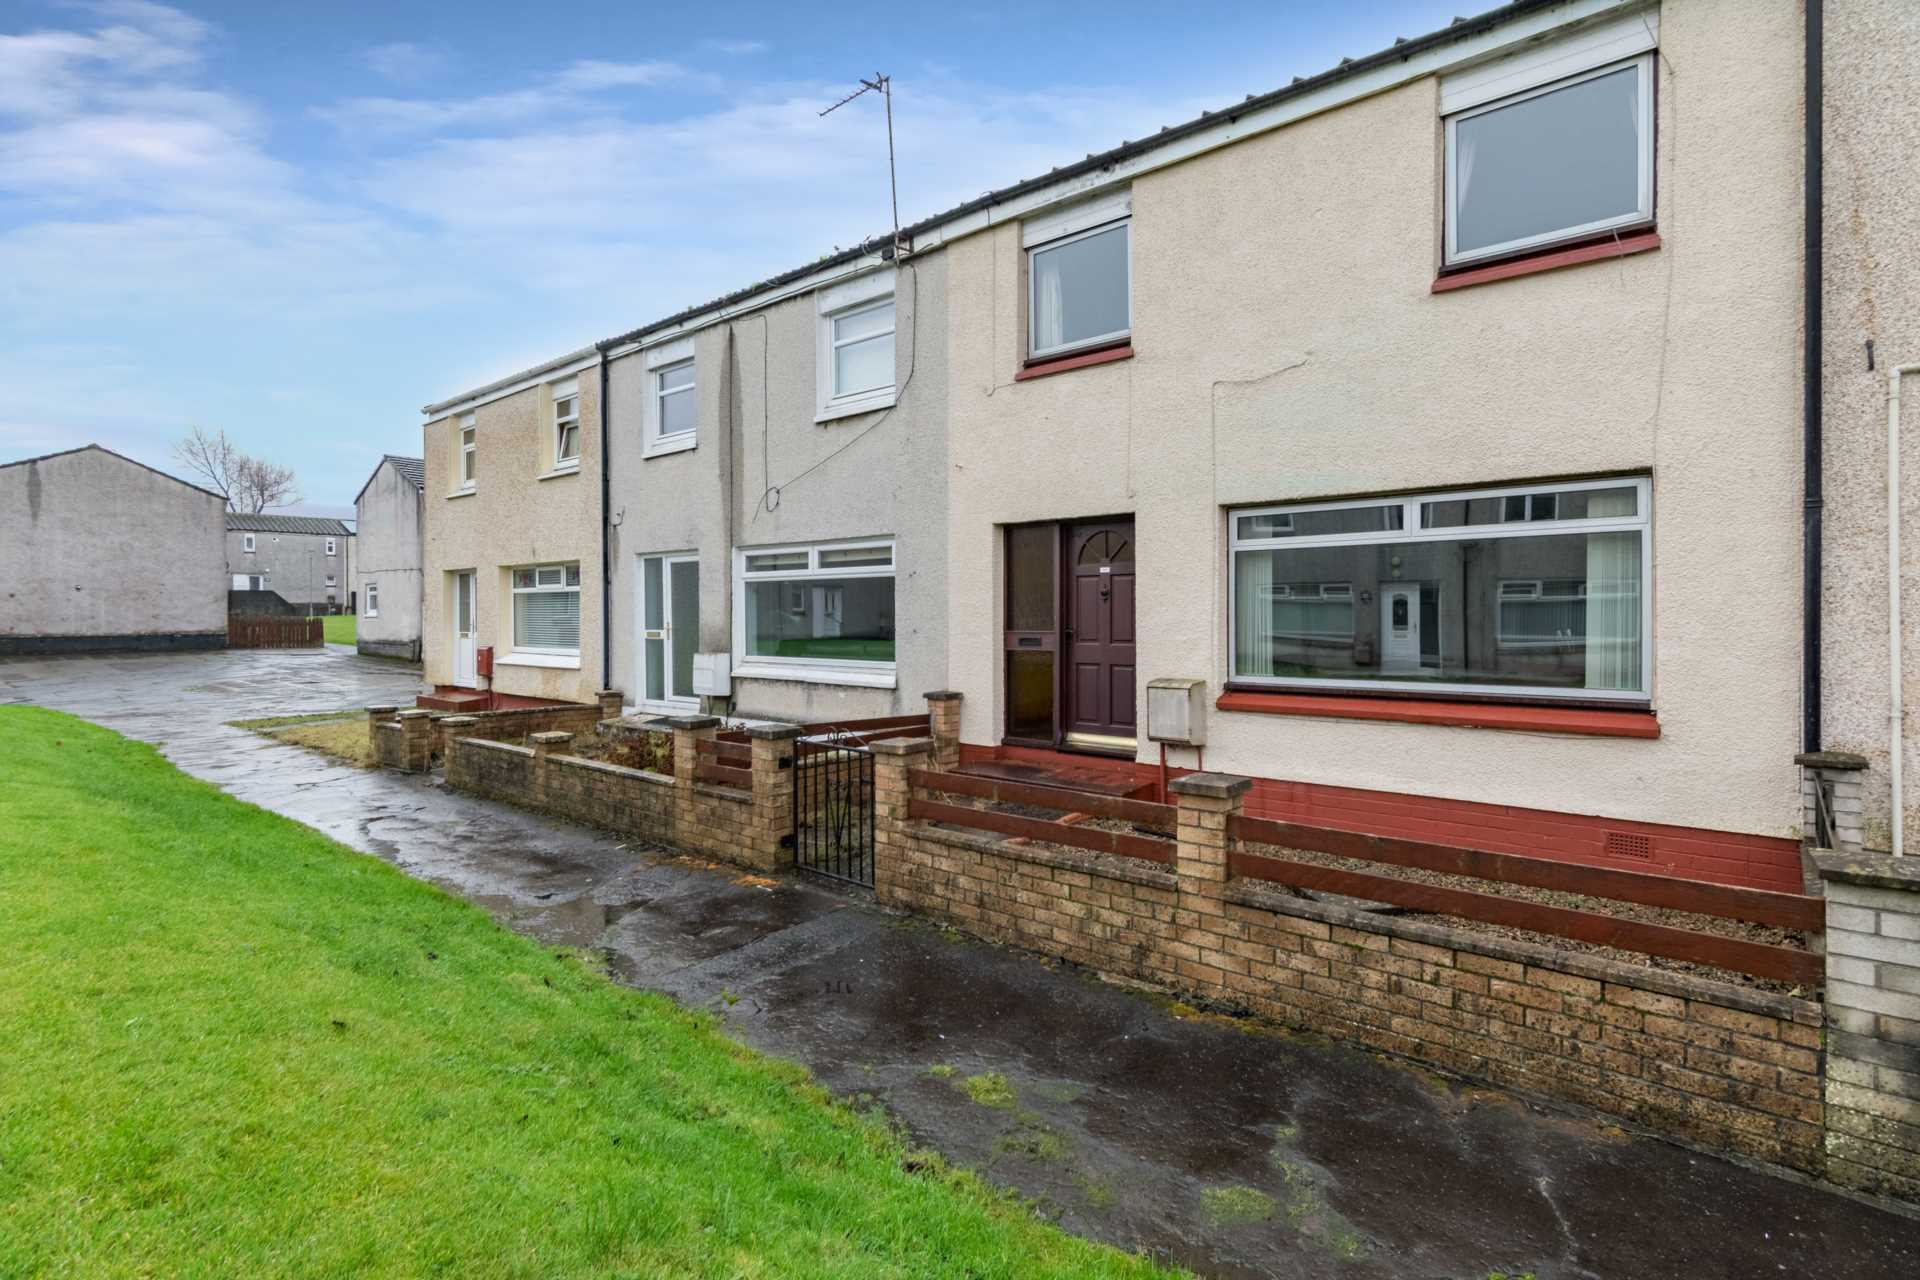 3 bedroom house for sale russell place paisley pa3 3ss for Paisley house